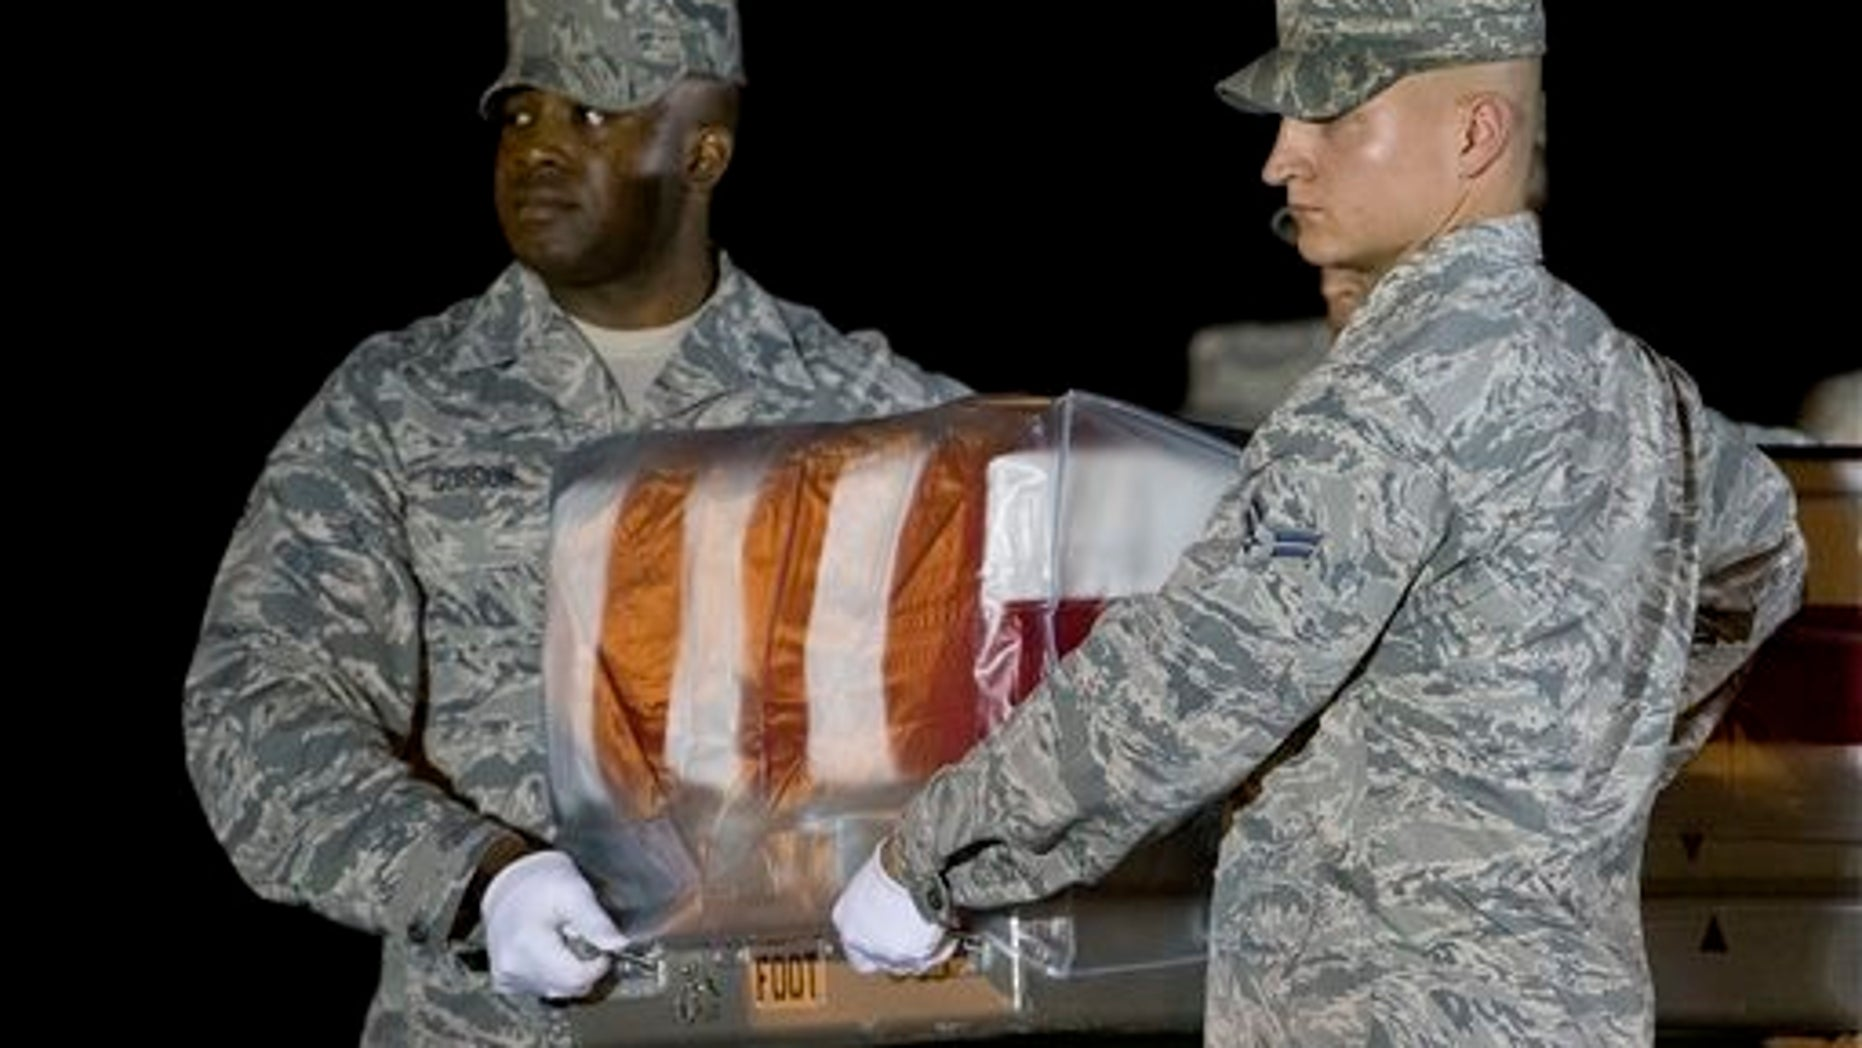 An Air Force carry team moves a transfer case containing the remains of Maj. Phyllis J. Pelky, Tuesday, Oct. 13, 2015, at Dover Air Force Base, Del. According to the Department of Defense, Pelky, 45, of Rio Rancho, N.M. died Oct. 11 in the crash of a British Puma Mk2 helicopter in Kabul, Afghanistan while supporting Operation Freedoms Sentinel. (AP Photo/Matt Rourke)